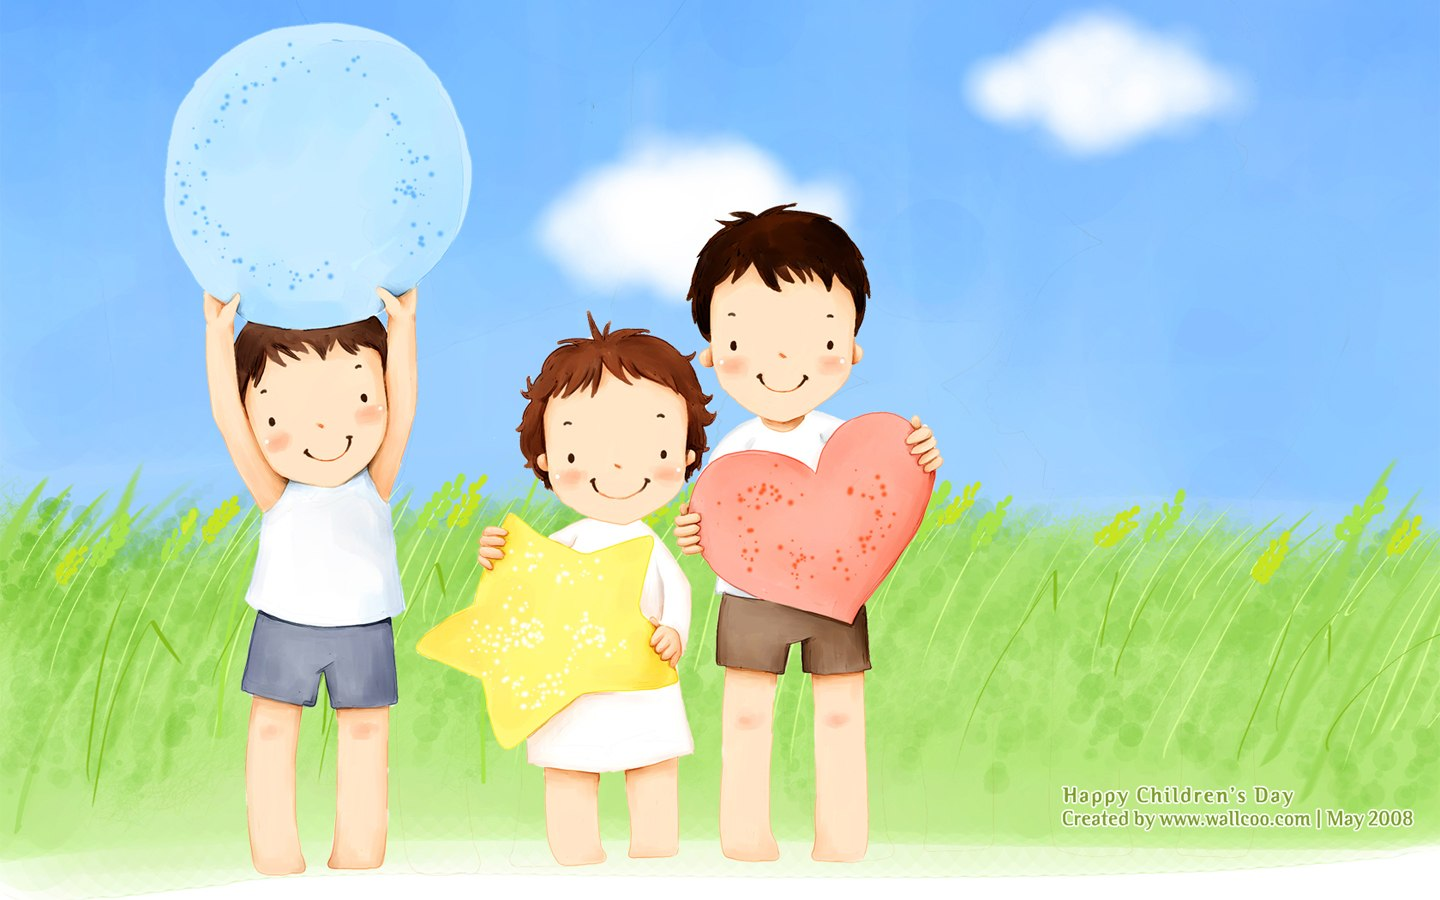 Lovely illustration art for children's Day 1440x900第24张桌面